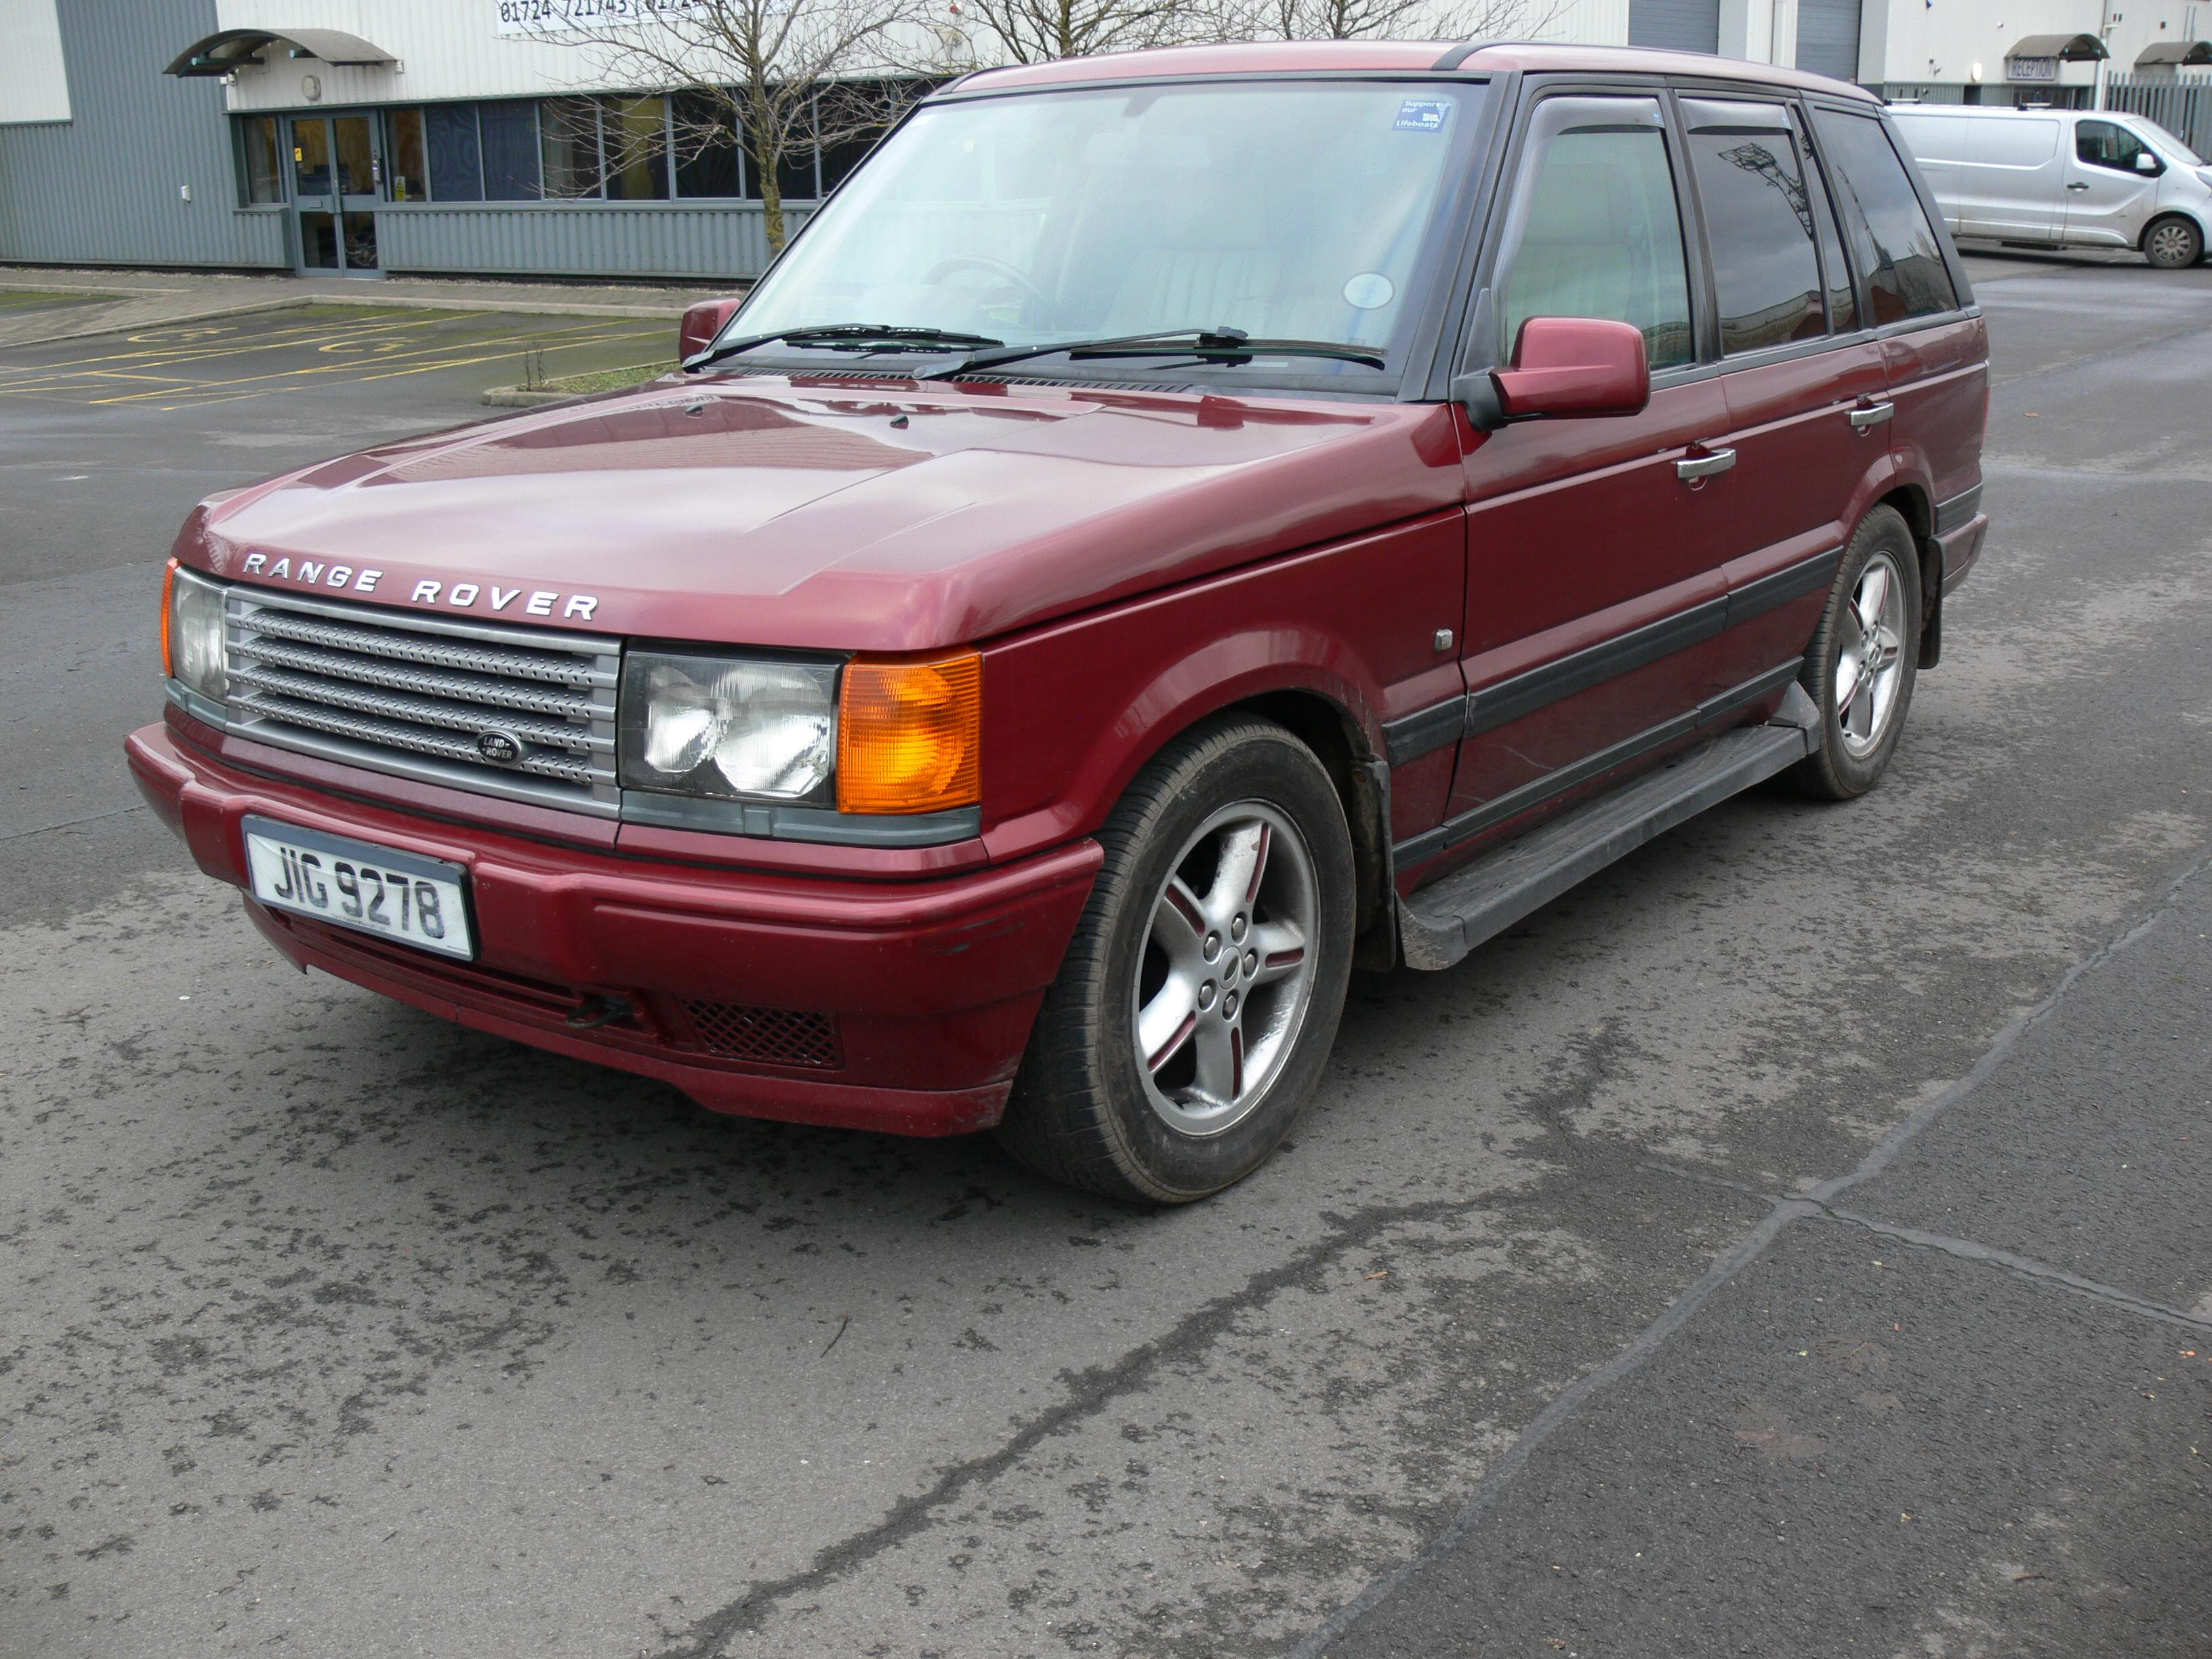 land rover range rover p38 automatic date of first registration 29 06 2001 bordeaux limited edi. Black Bedroom Furniture Sets. Home Design Ideas